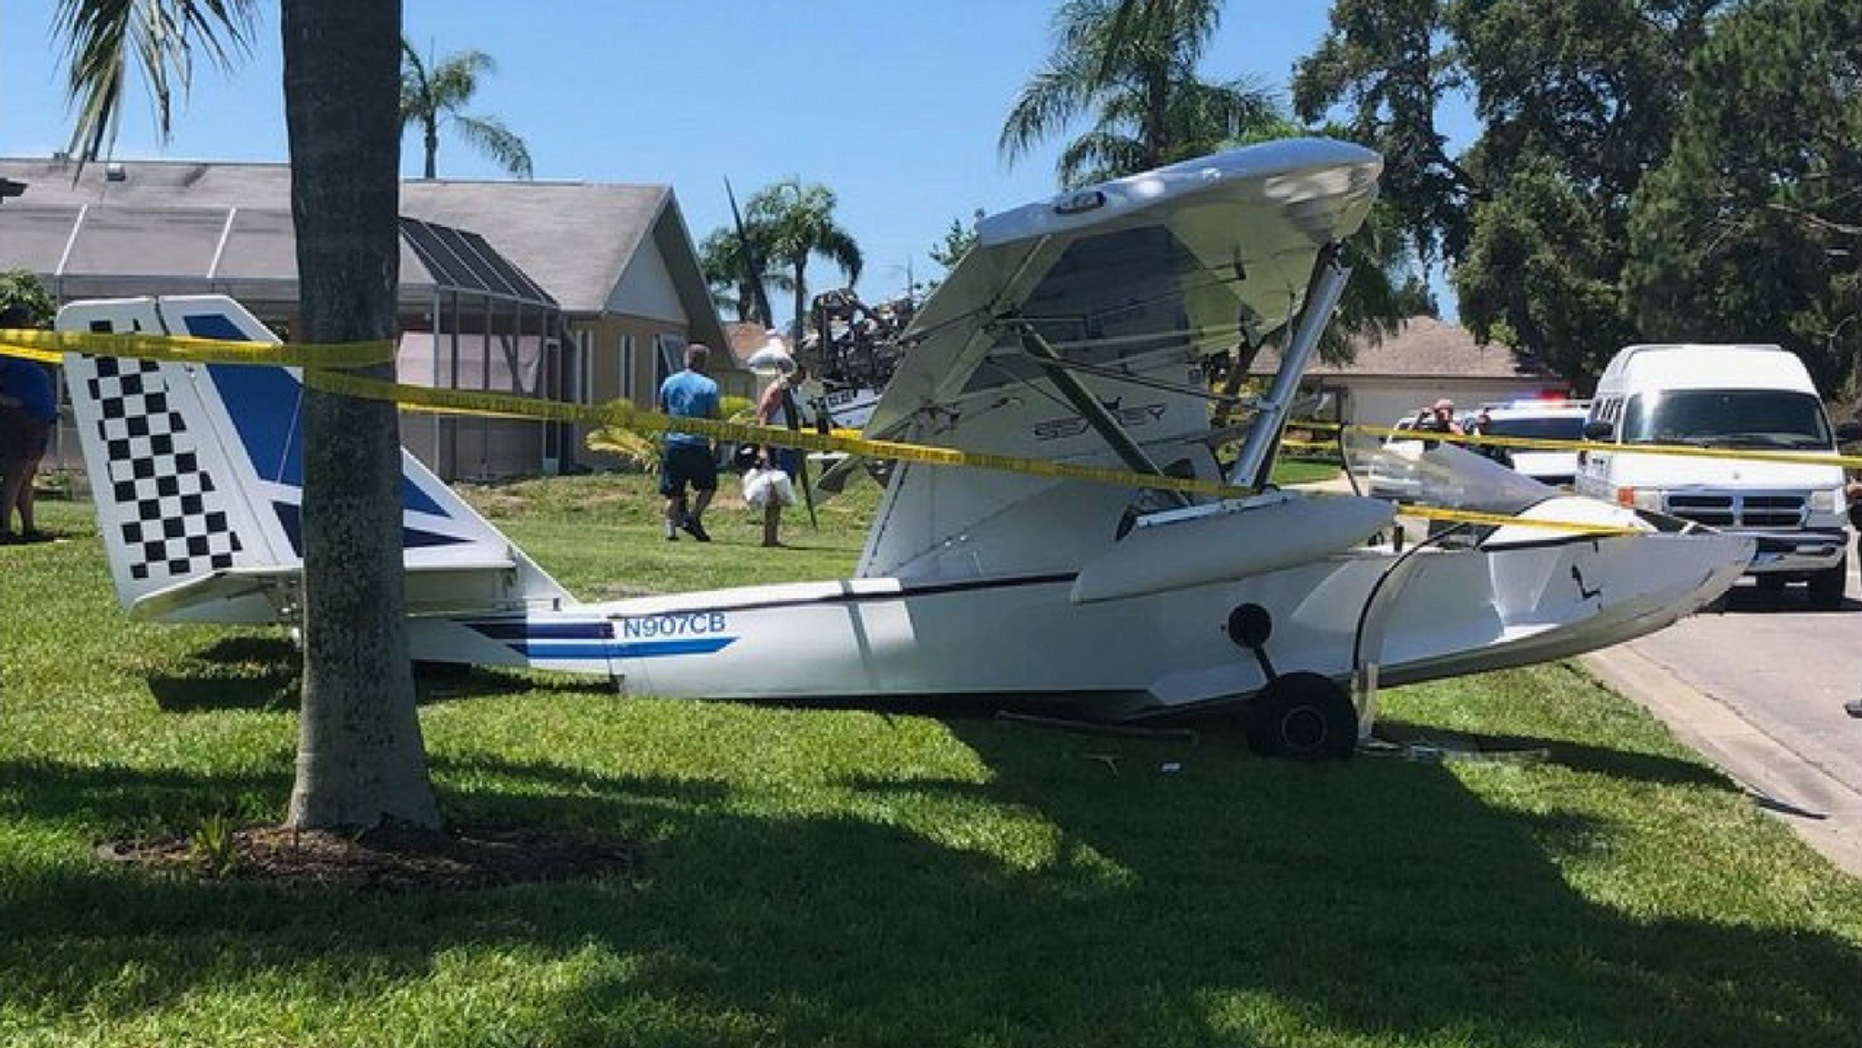 A small plane crashed into a Florida lawn on Thursday shortly after takeoff.